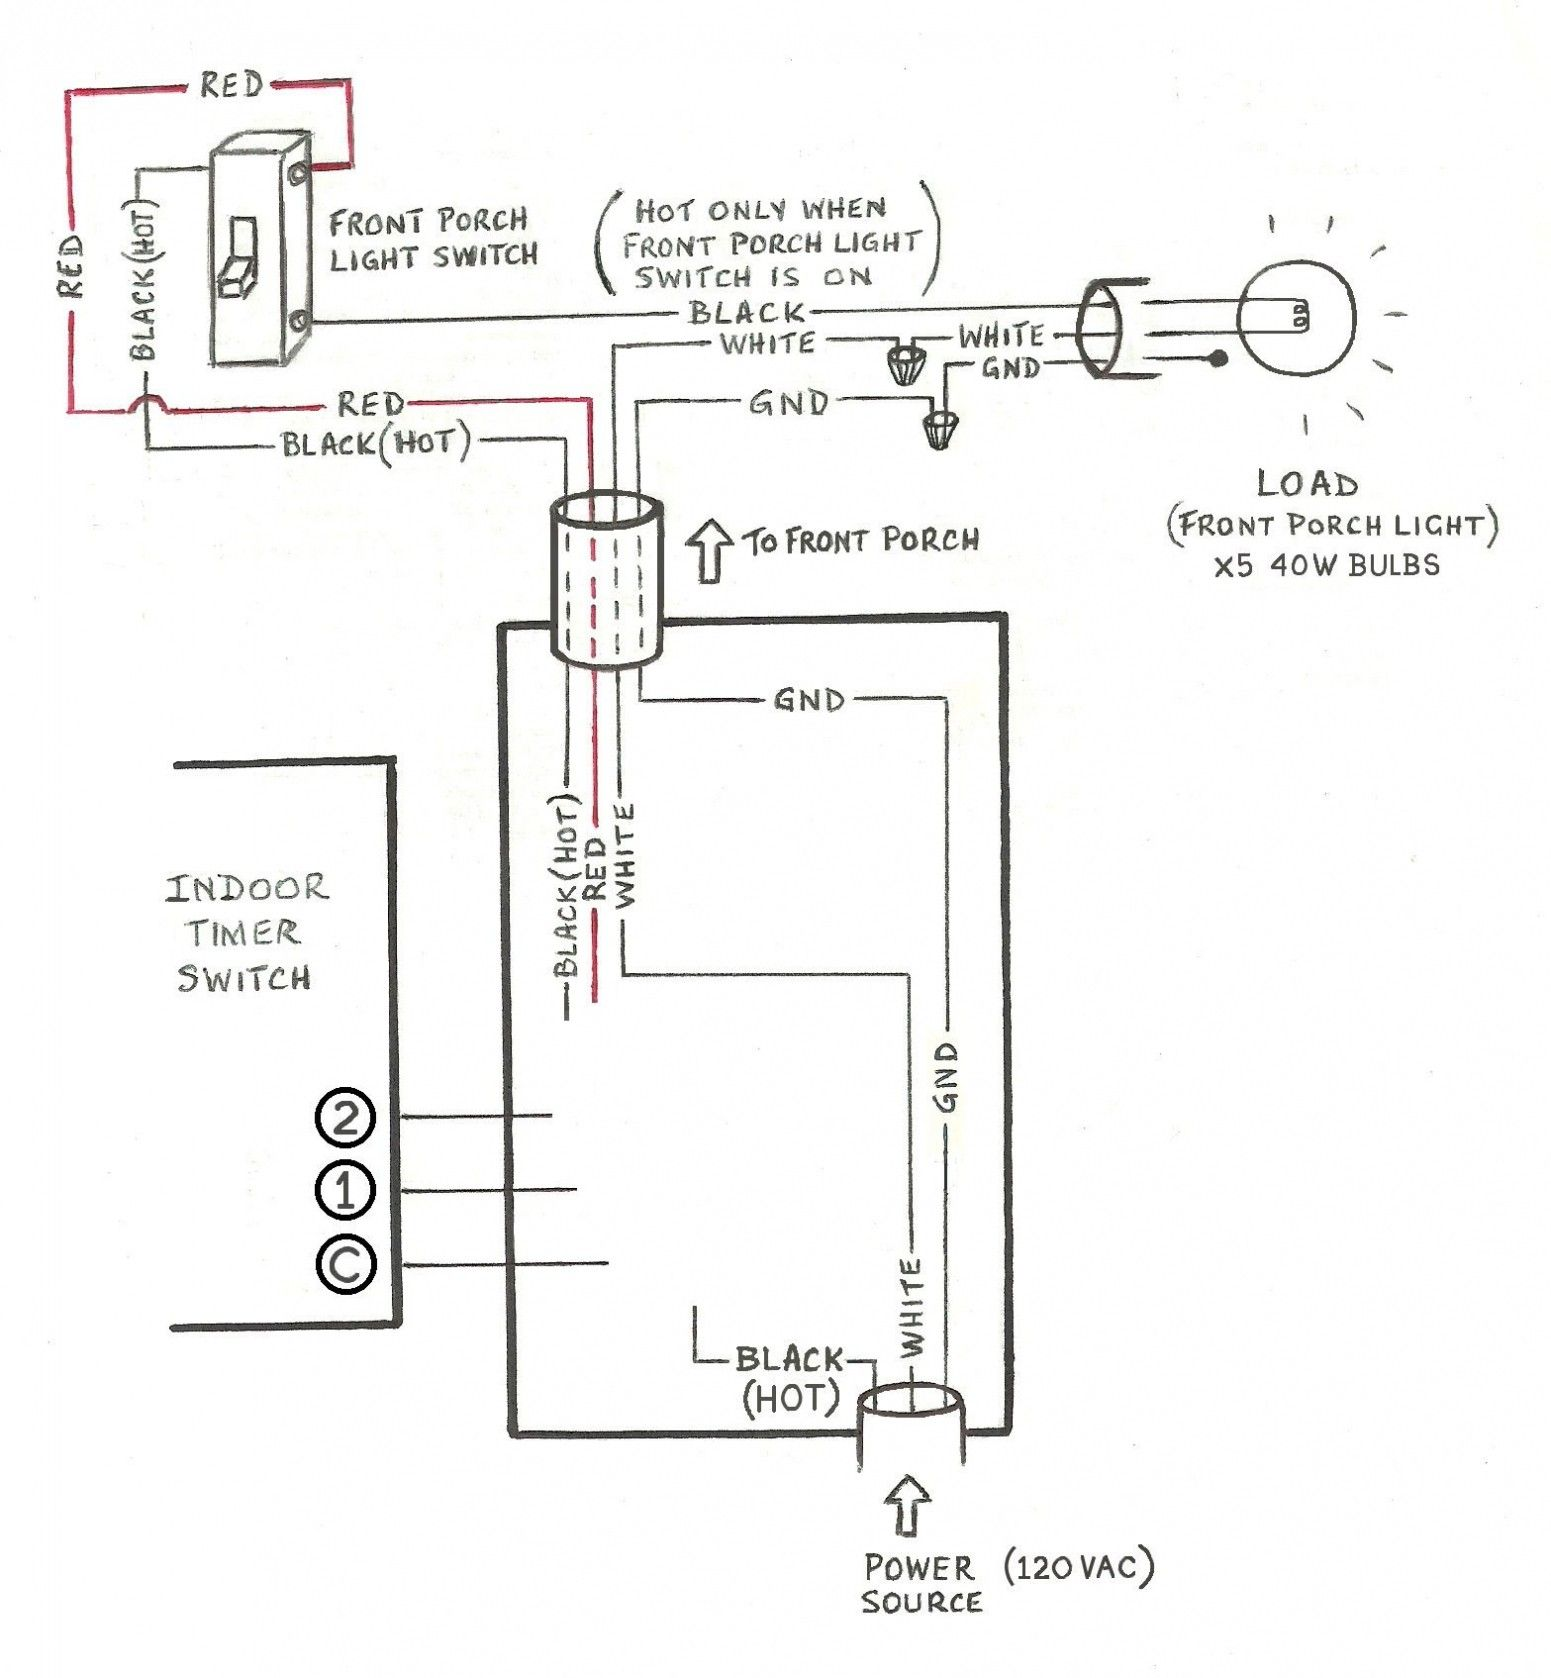 Unique Wiring Diagram For A Leviton Dimmer Switch Diagram Diagramtemplate Diagramsample Electricidad Industrial Electricidad Electronica